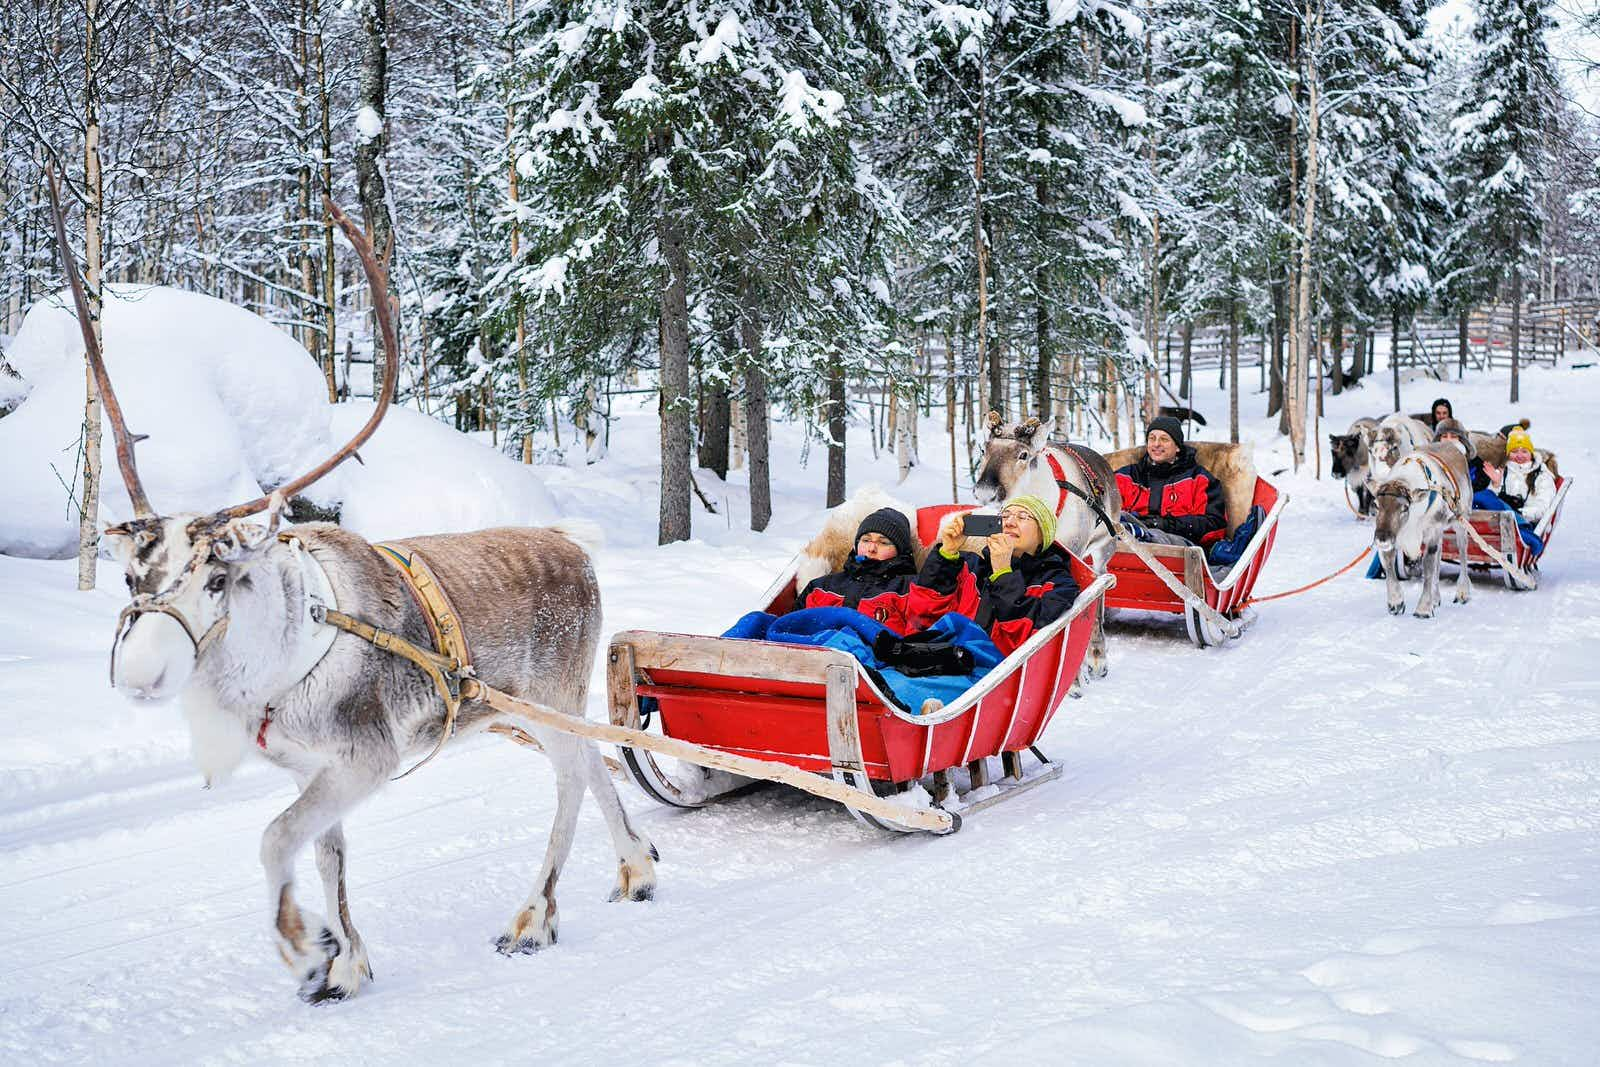 Rovaniemi, Finland - March 5, 2017: People in Reindeer sledge caravan safari in winter forest in Rovaniemi, Lapland, Finland